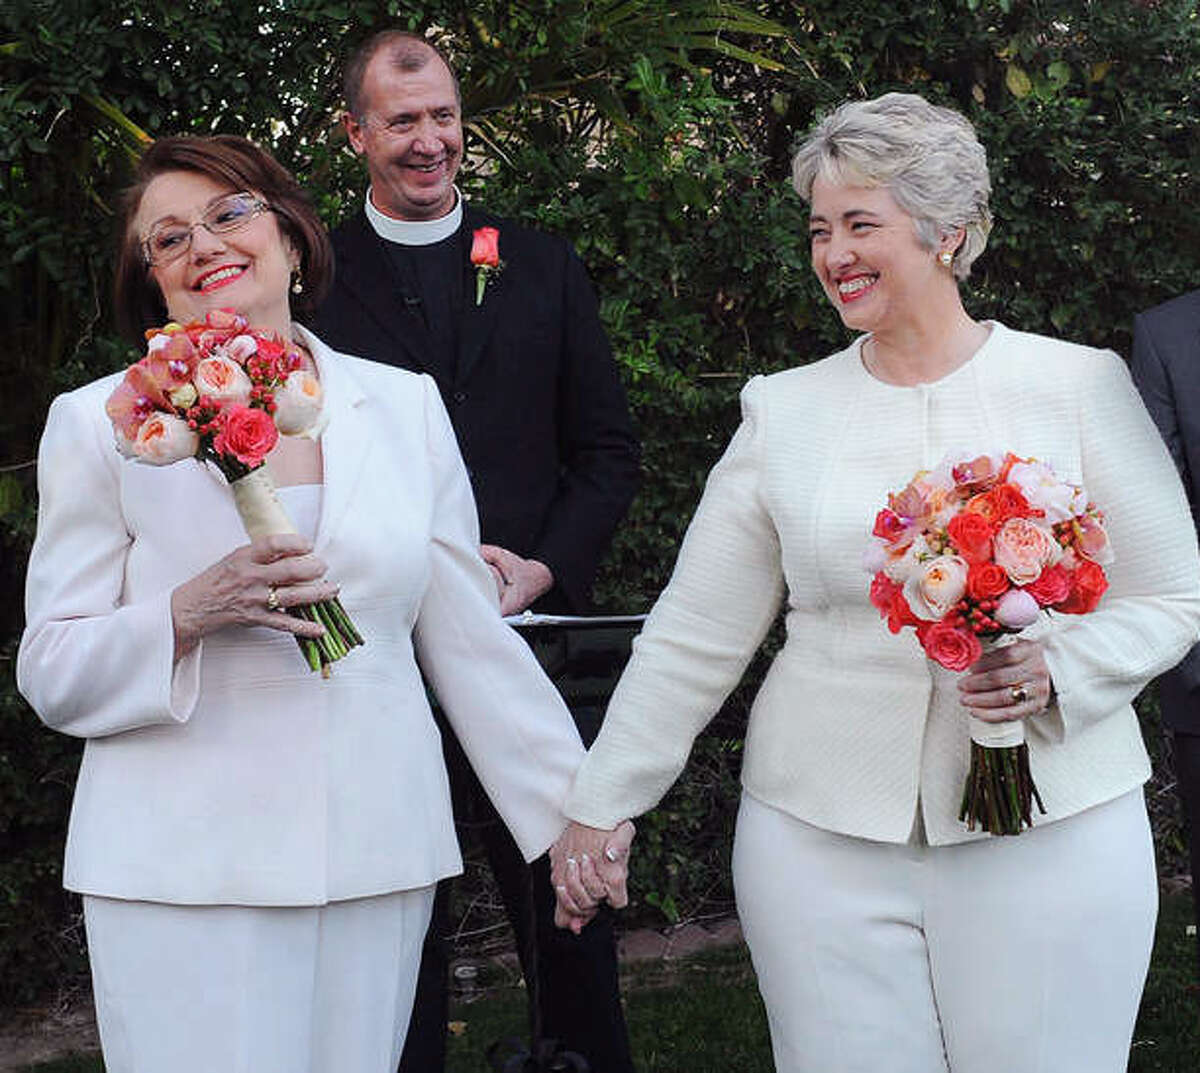 Houston Mayor Annise Parker (right) and her longtime partner, Kathy Hubbard, celebrate at their wedding in Palm Springs, Calif.